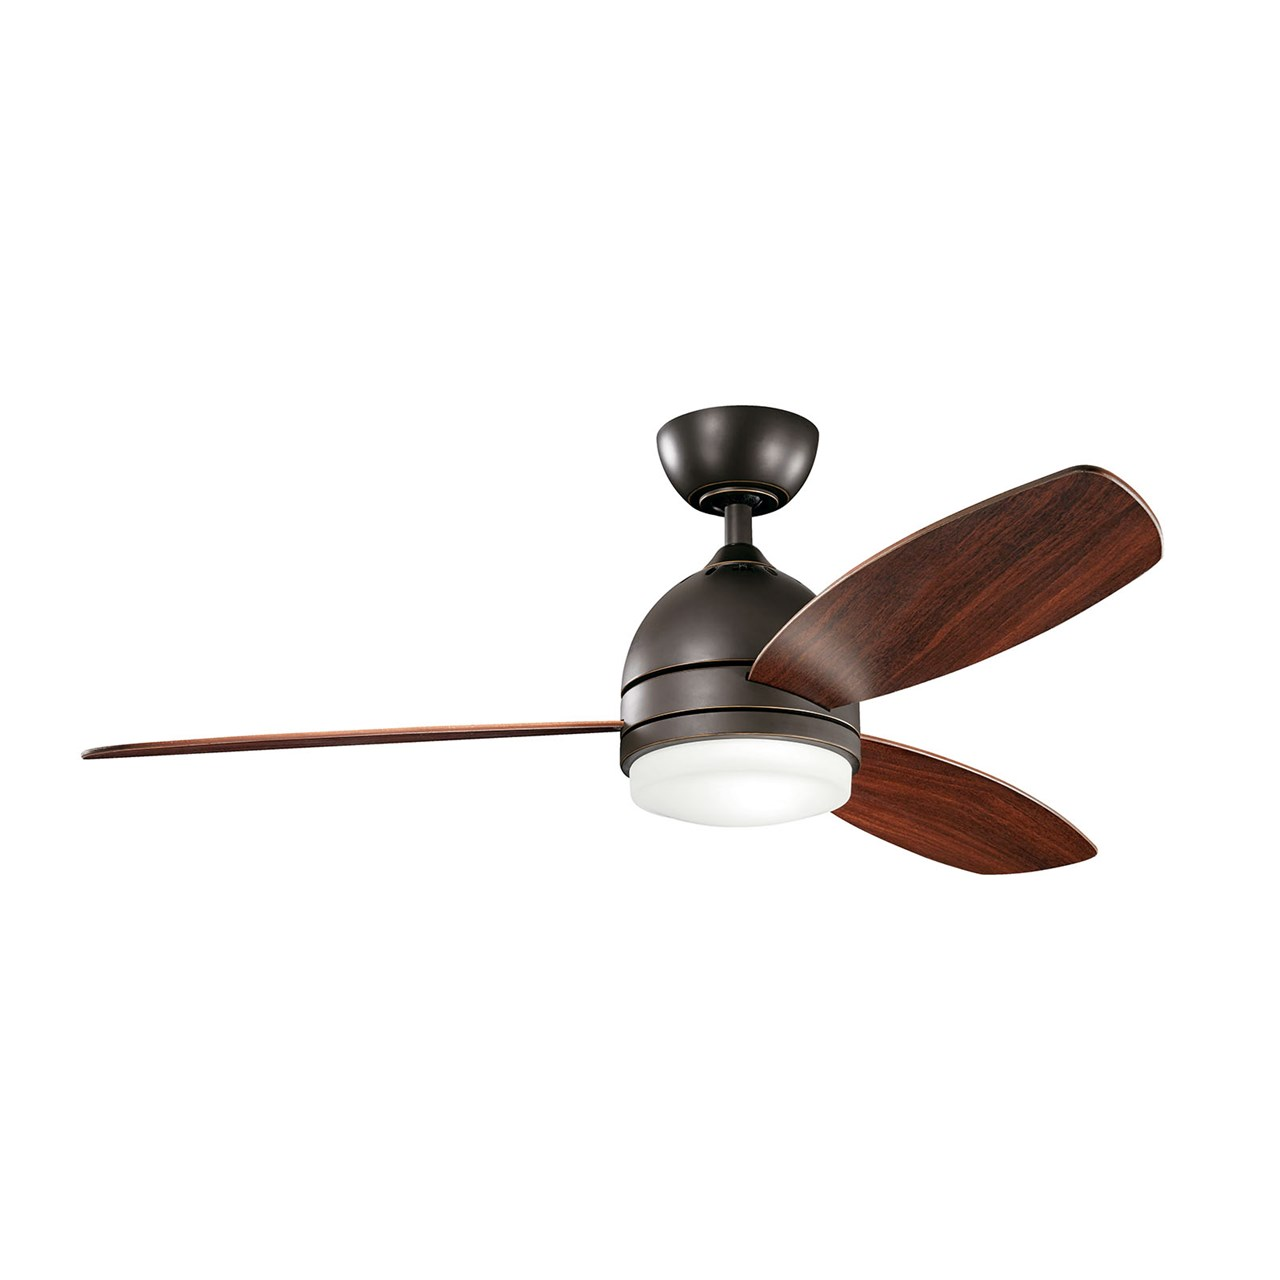 "Vassar™ LED 52"" Fan Olde Bronze®"